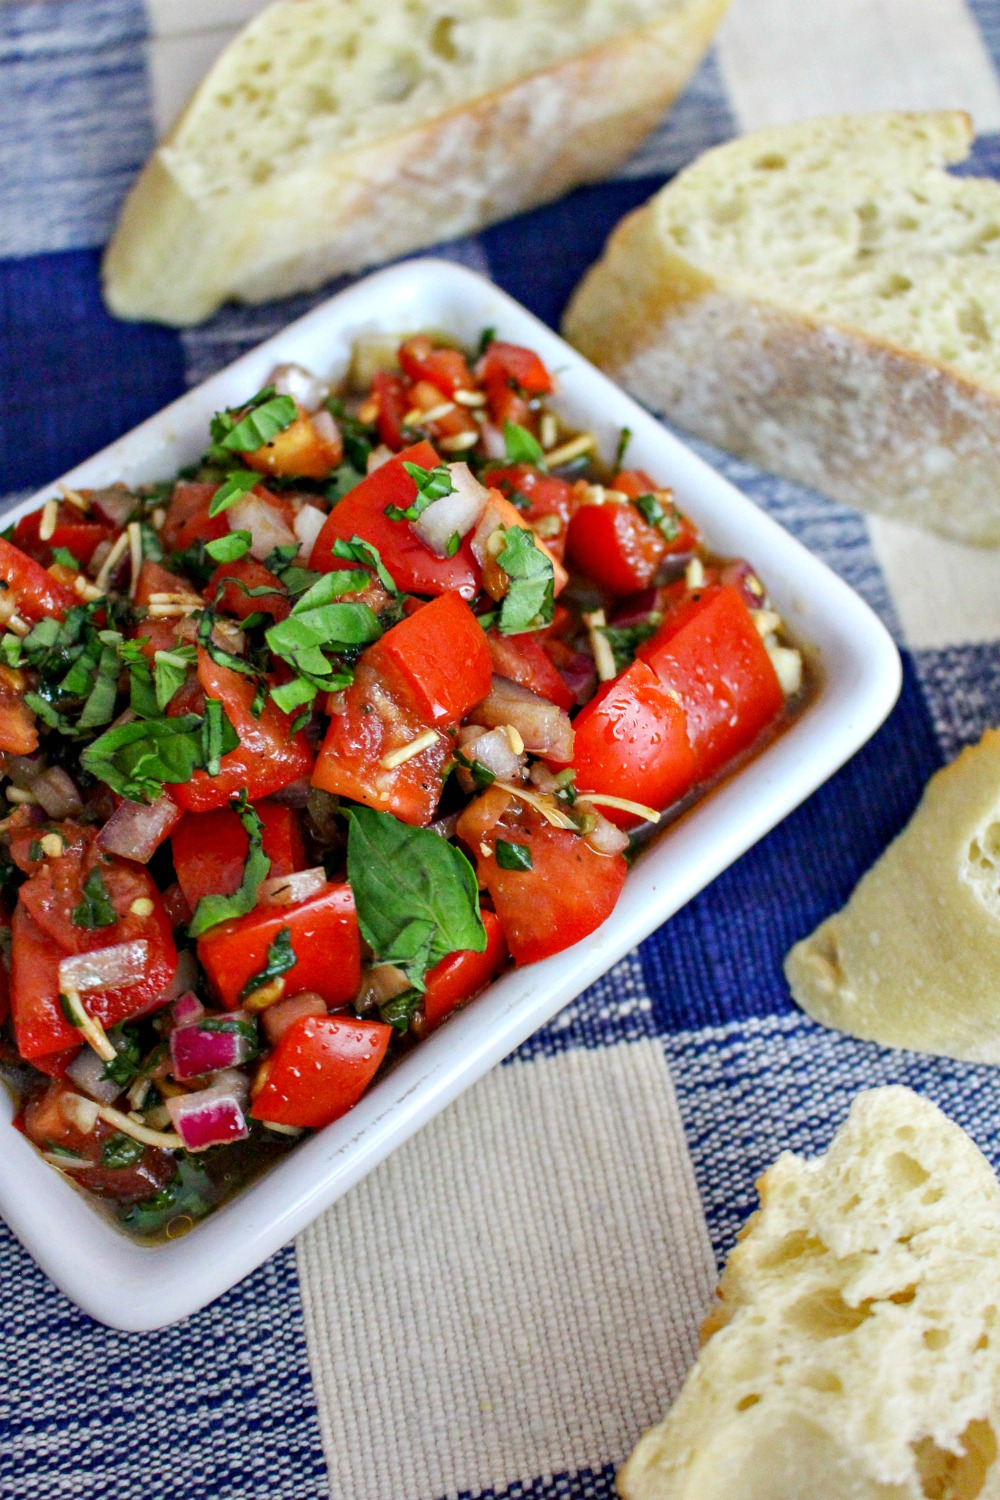 bruscheta with tomato and basil